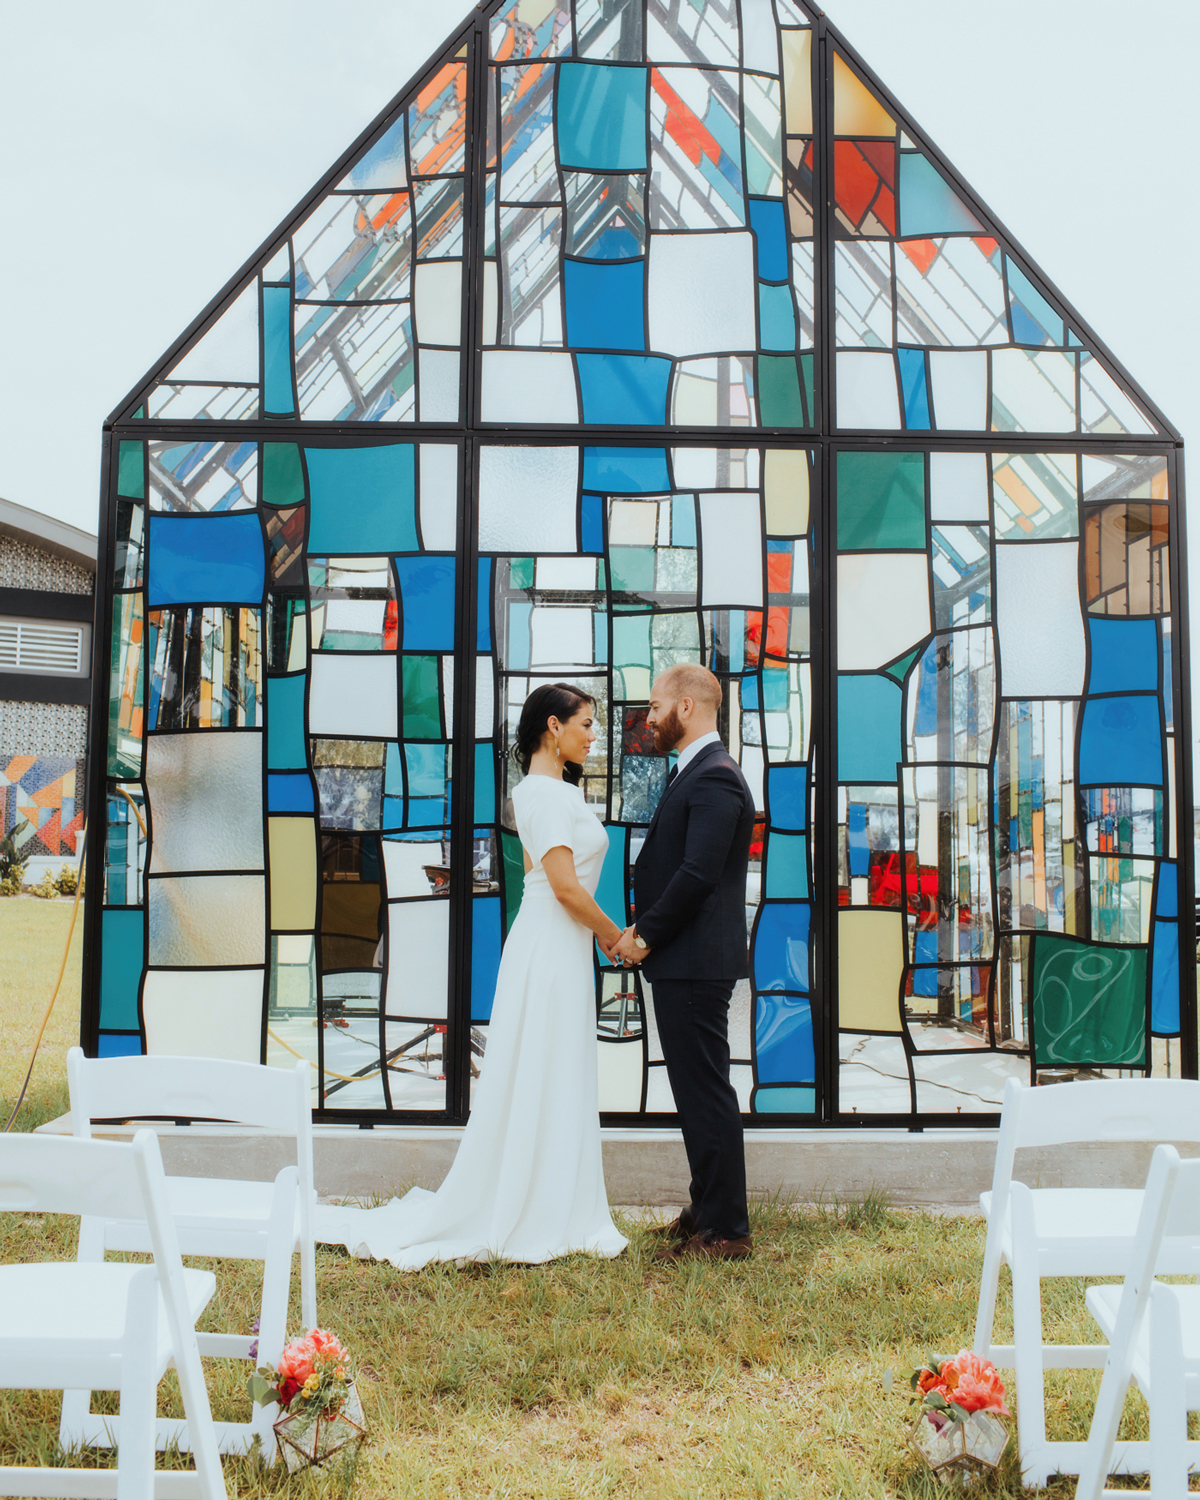 Stained Glass House-shaped wedding ceremony backdrop